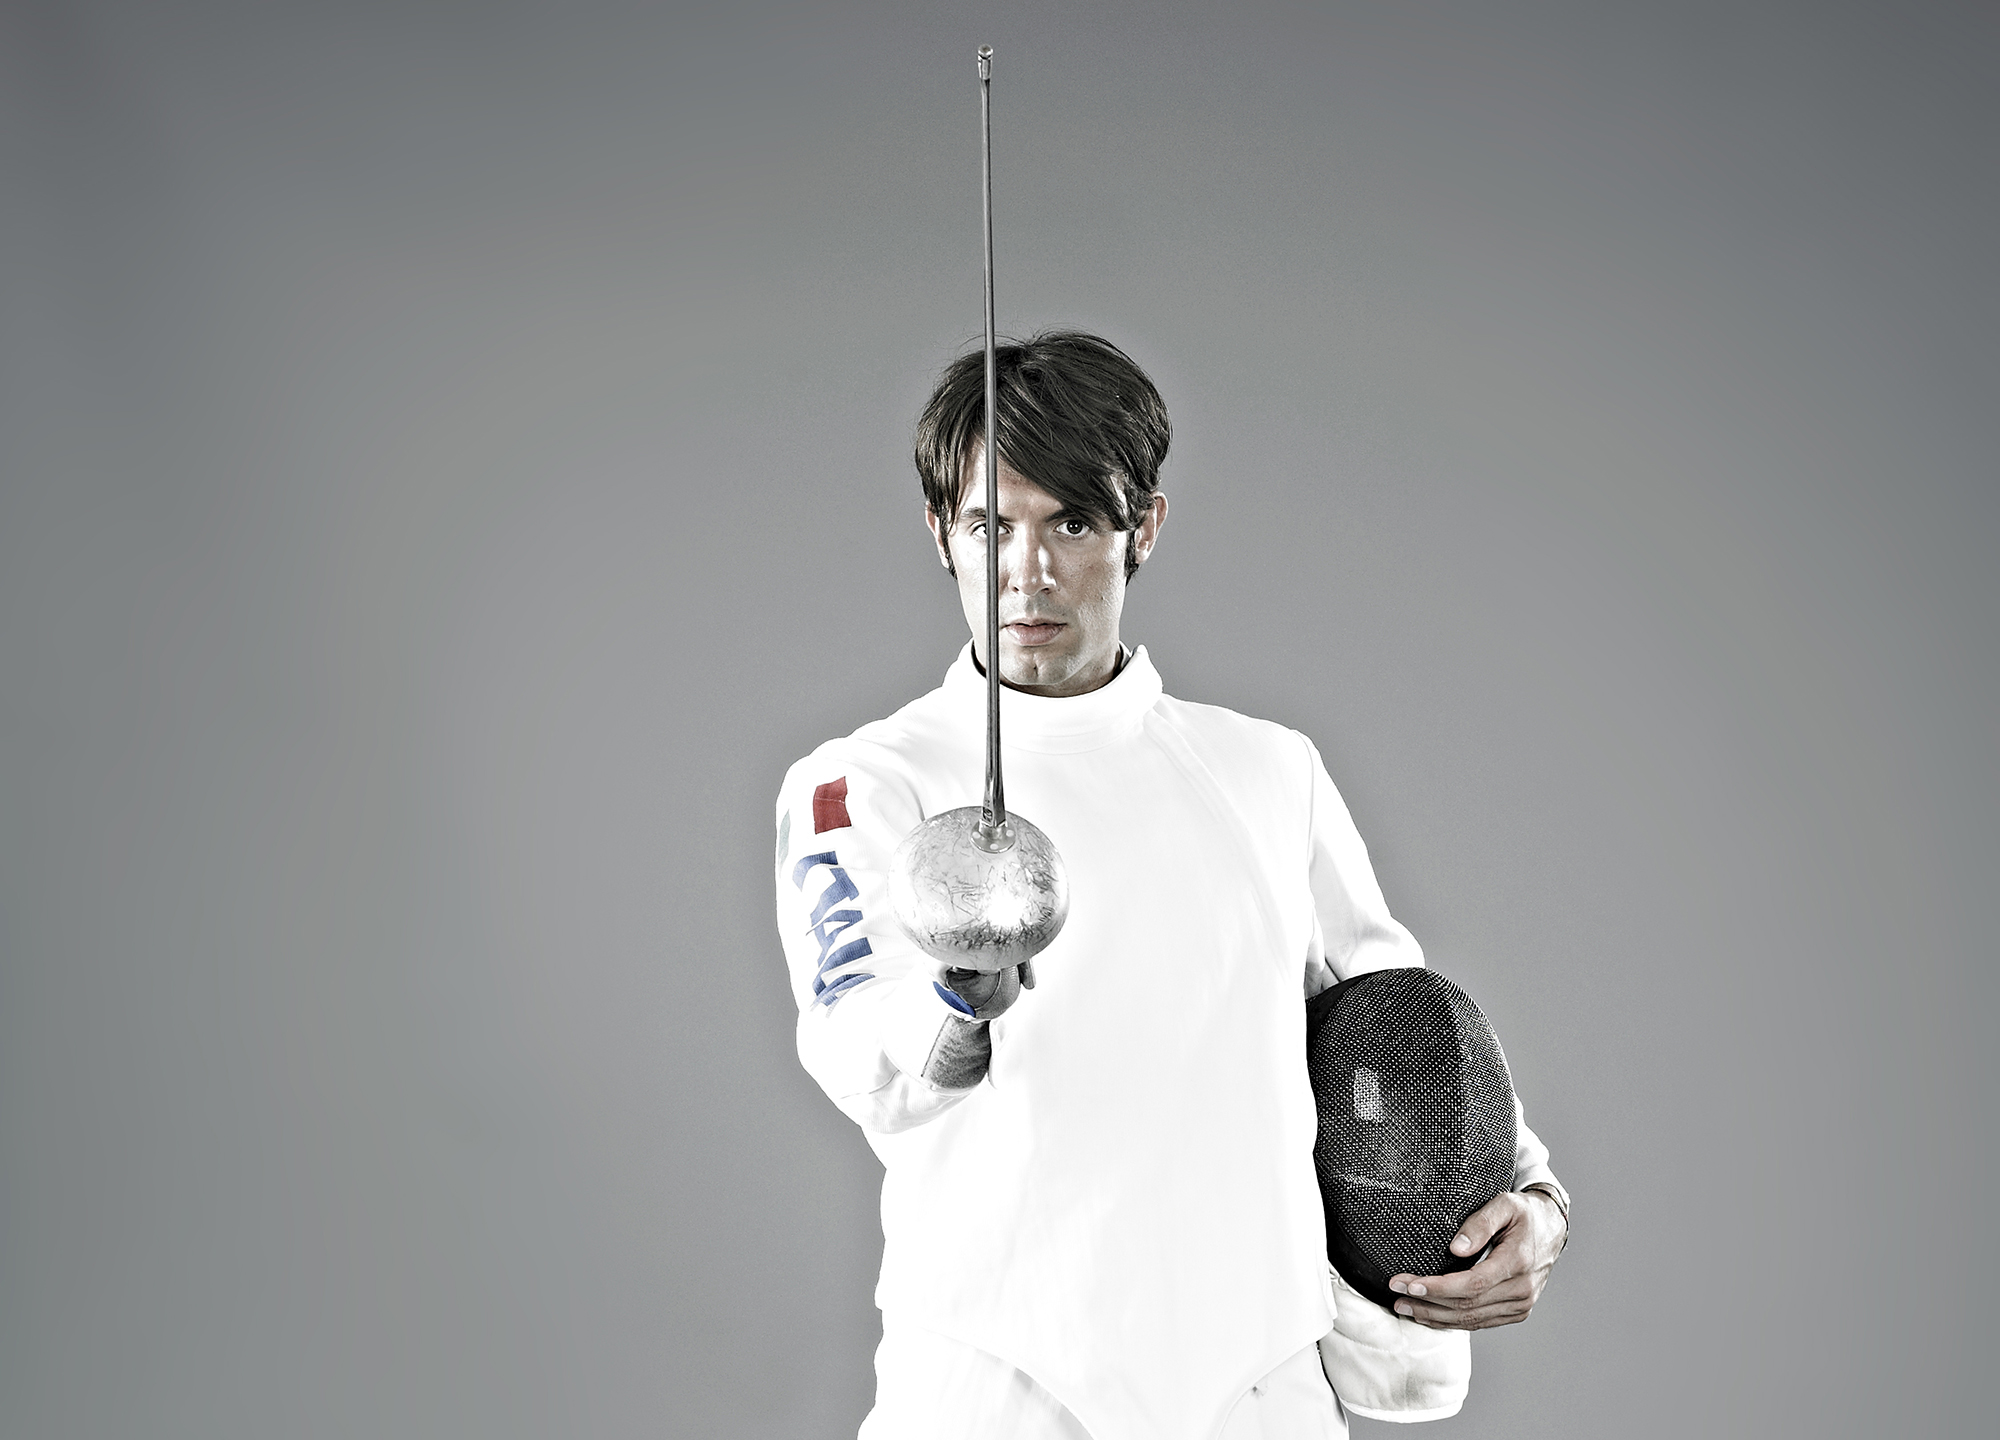 John Donoghue - portrait of male fencer